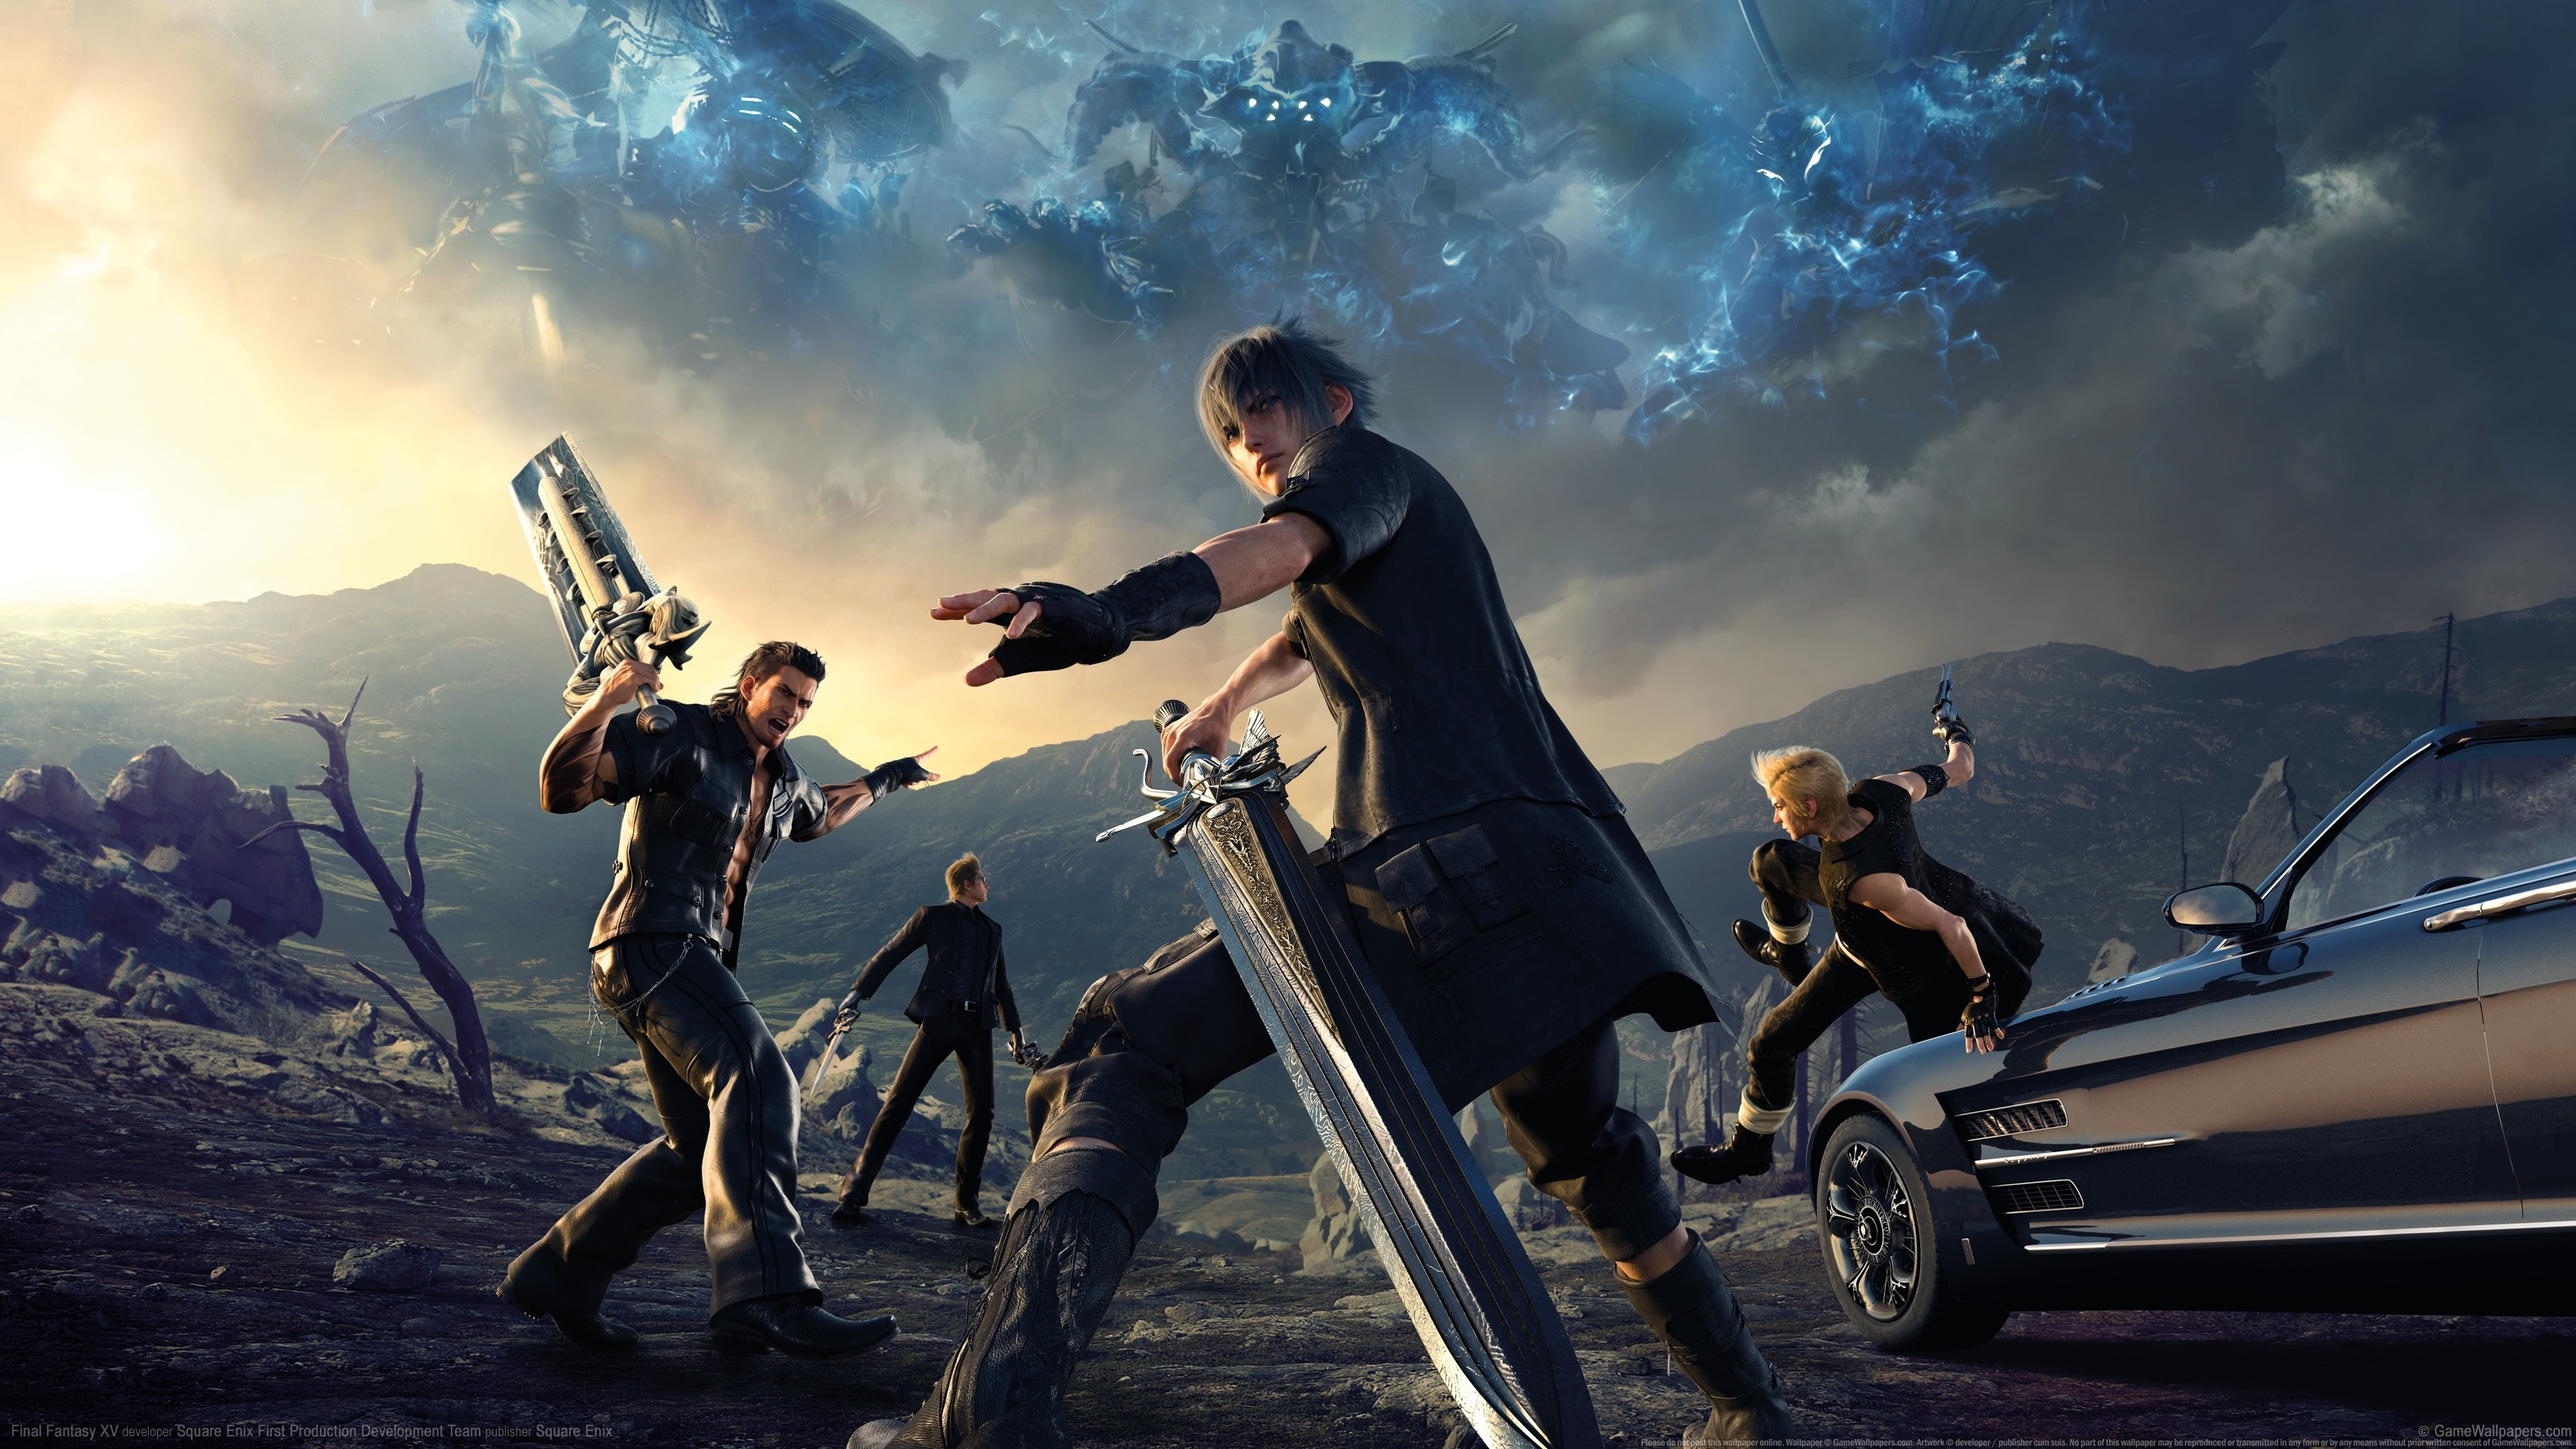 Final Fantasy Xv Hd Wallpaper 81 Images